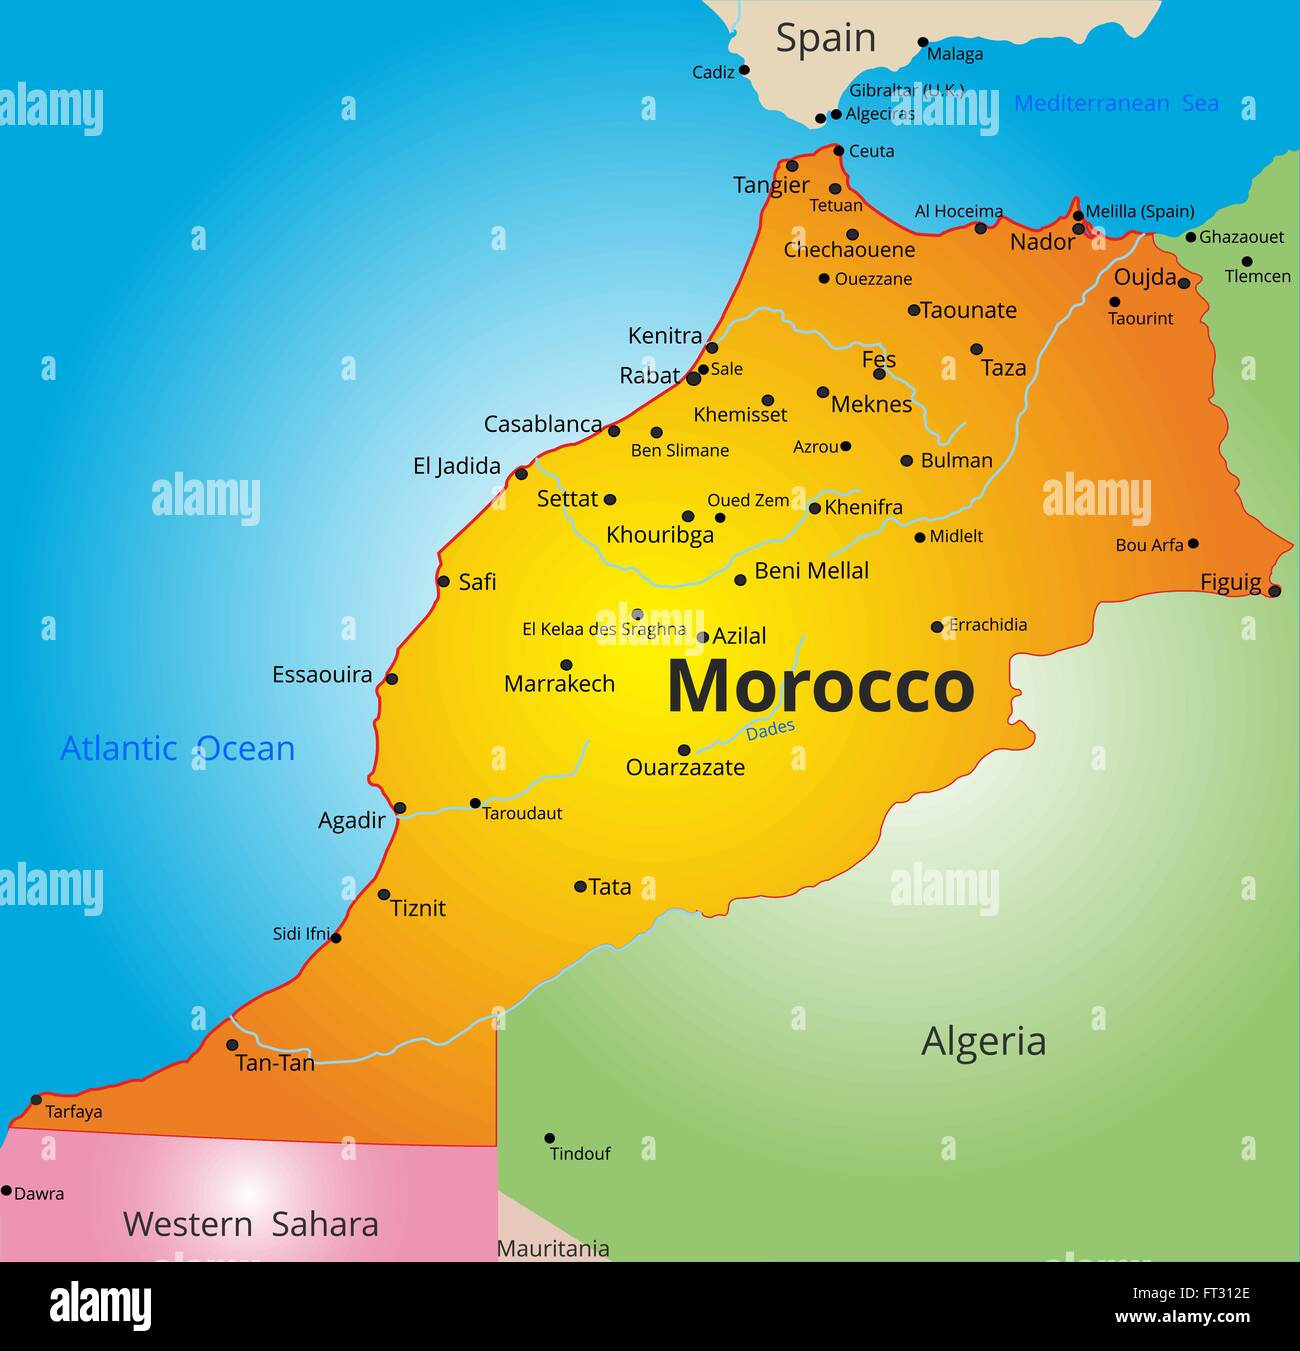 Color map of morocco country stock vector art illustration vector color map of morocco country gumiabroncs Images